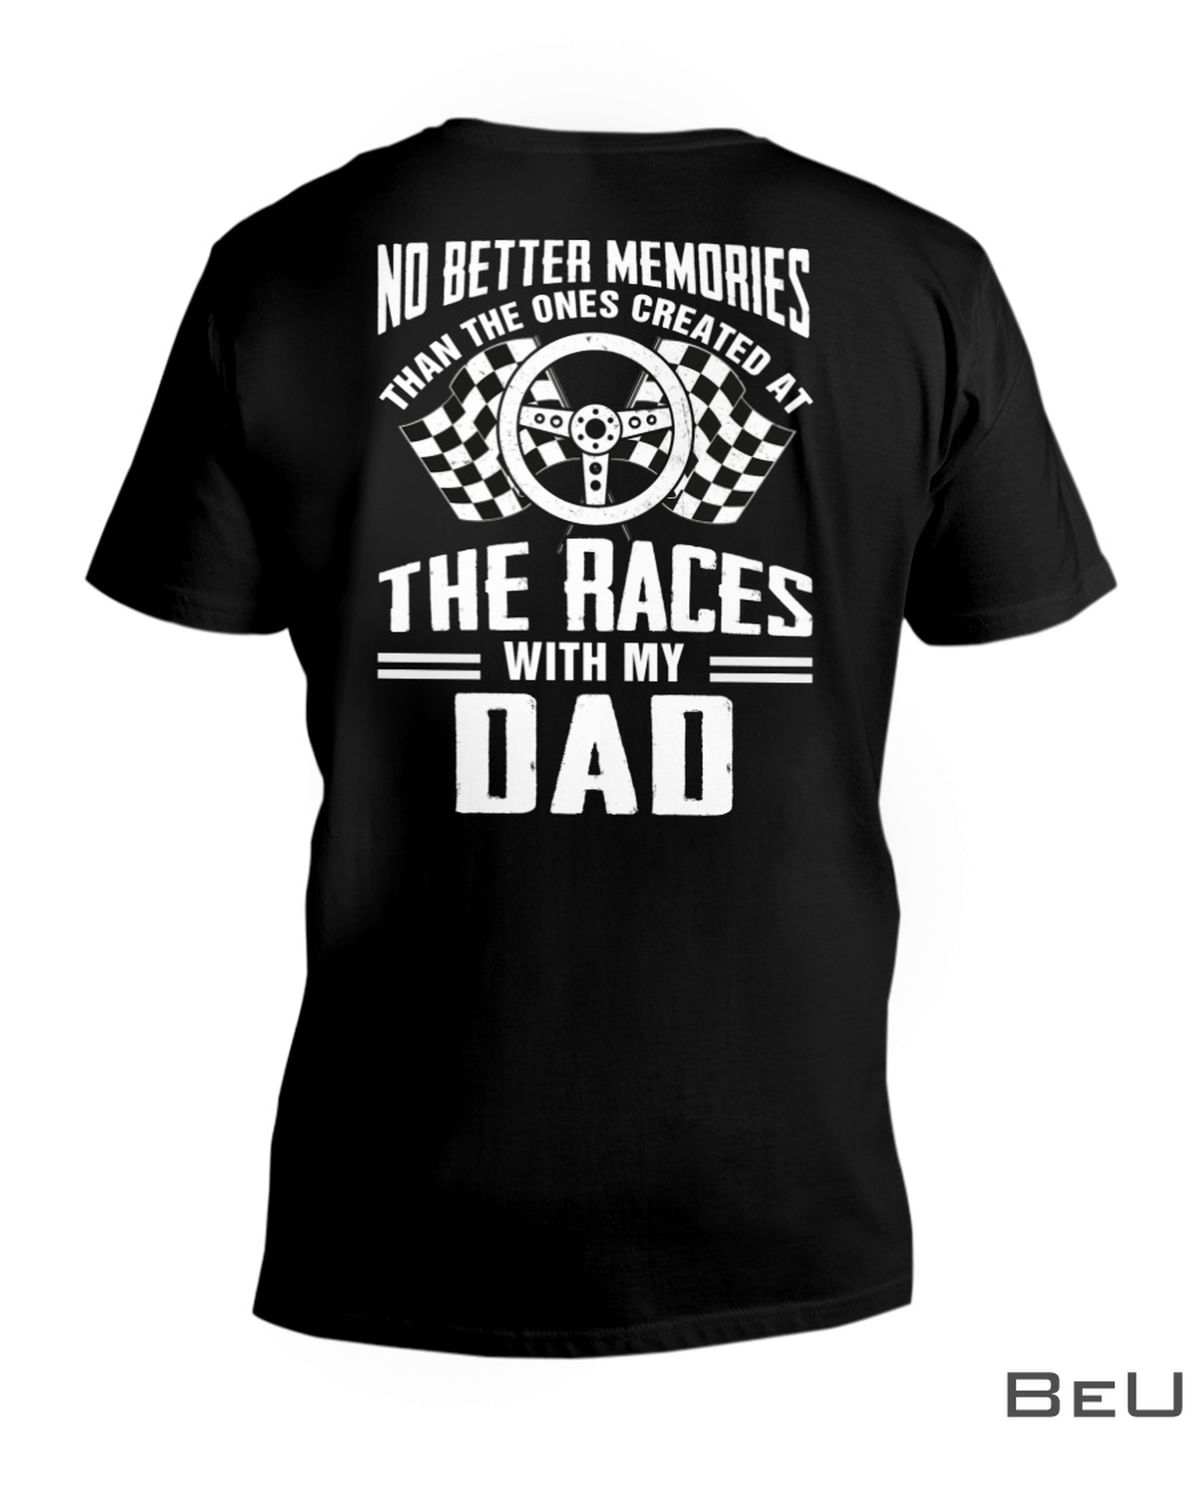 Stock Car Racing No Better Memories Than The Ones Created At The Races With My Dad Shirt x